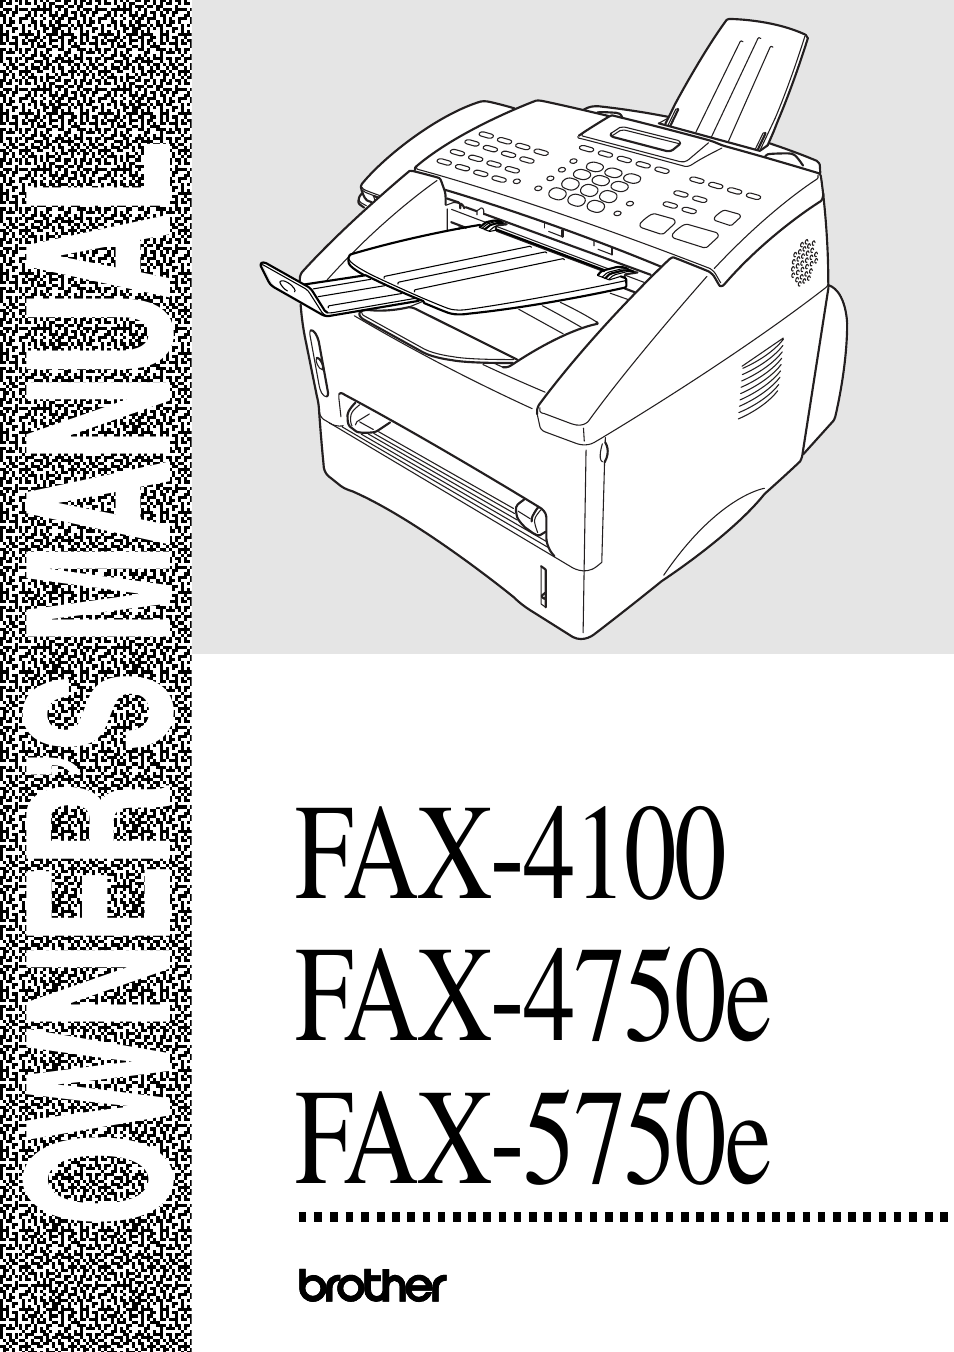 Brother intellifax-4100e fax download instruction manual pdf.